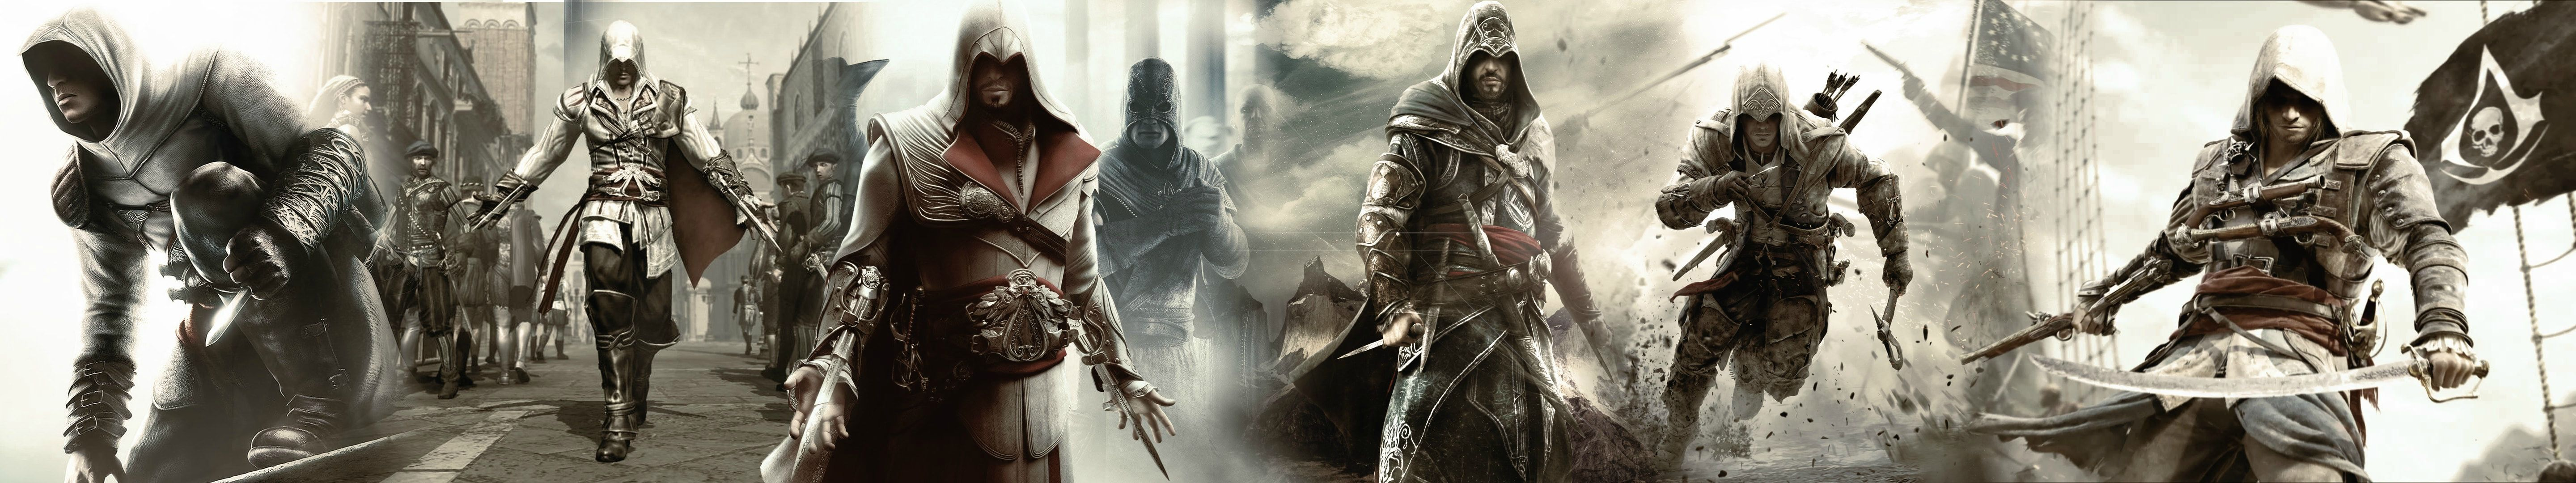 Assassin S Creed Dual Screen Wallpapers Top Free Assassin S